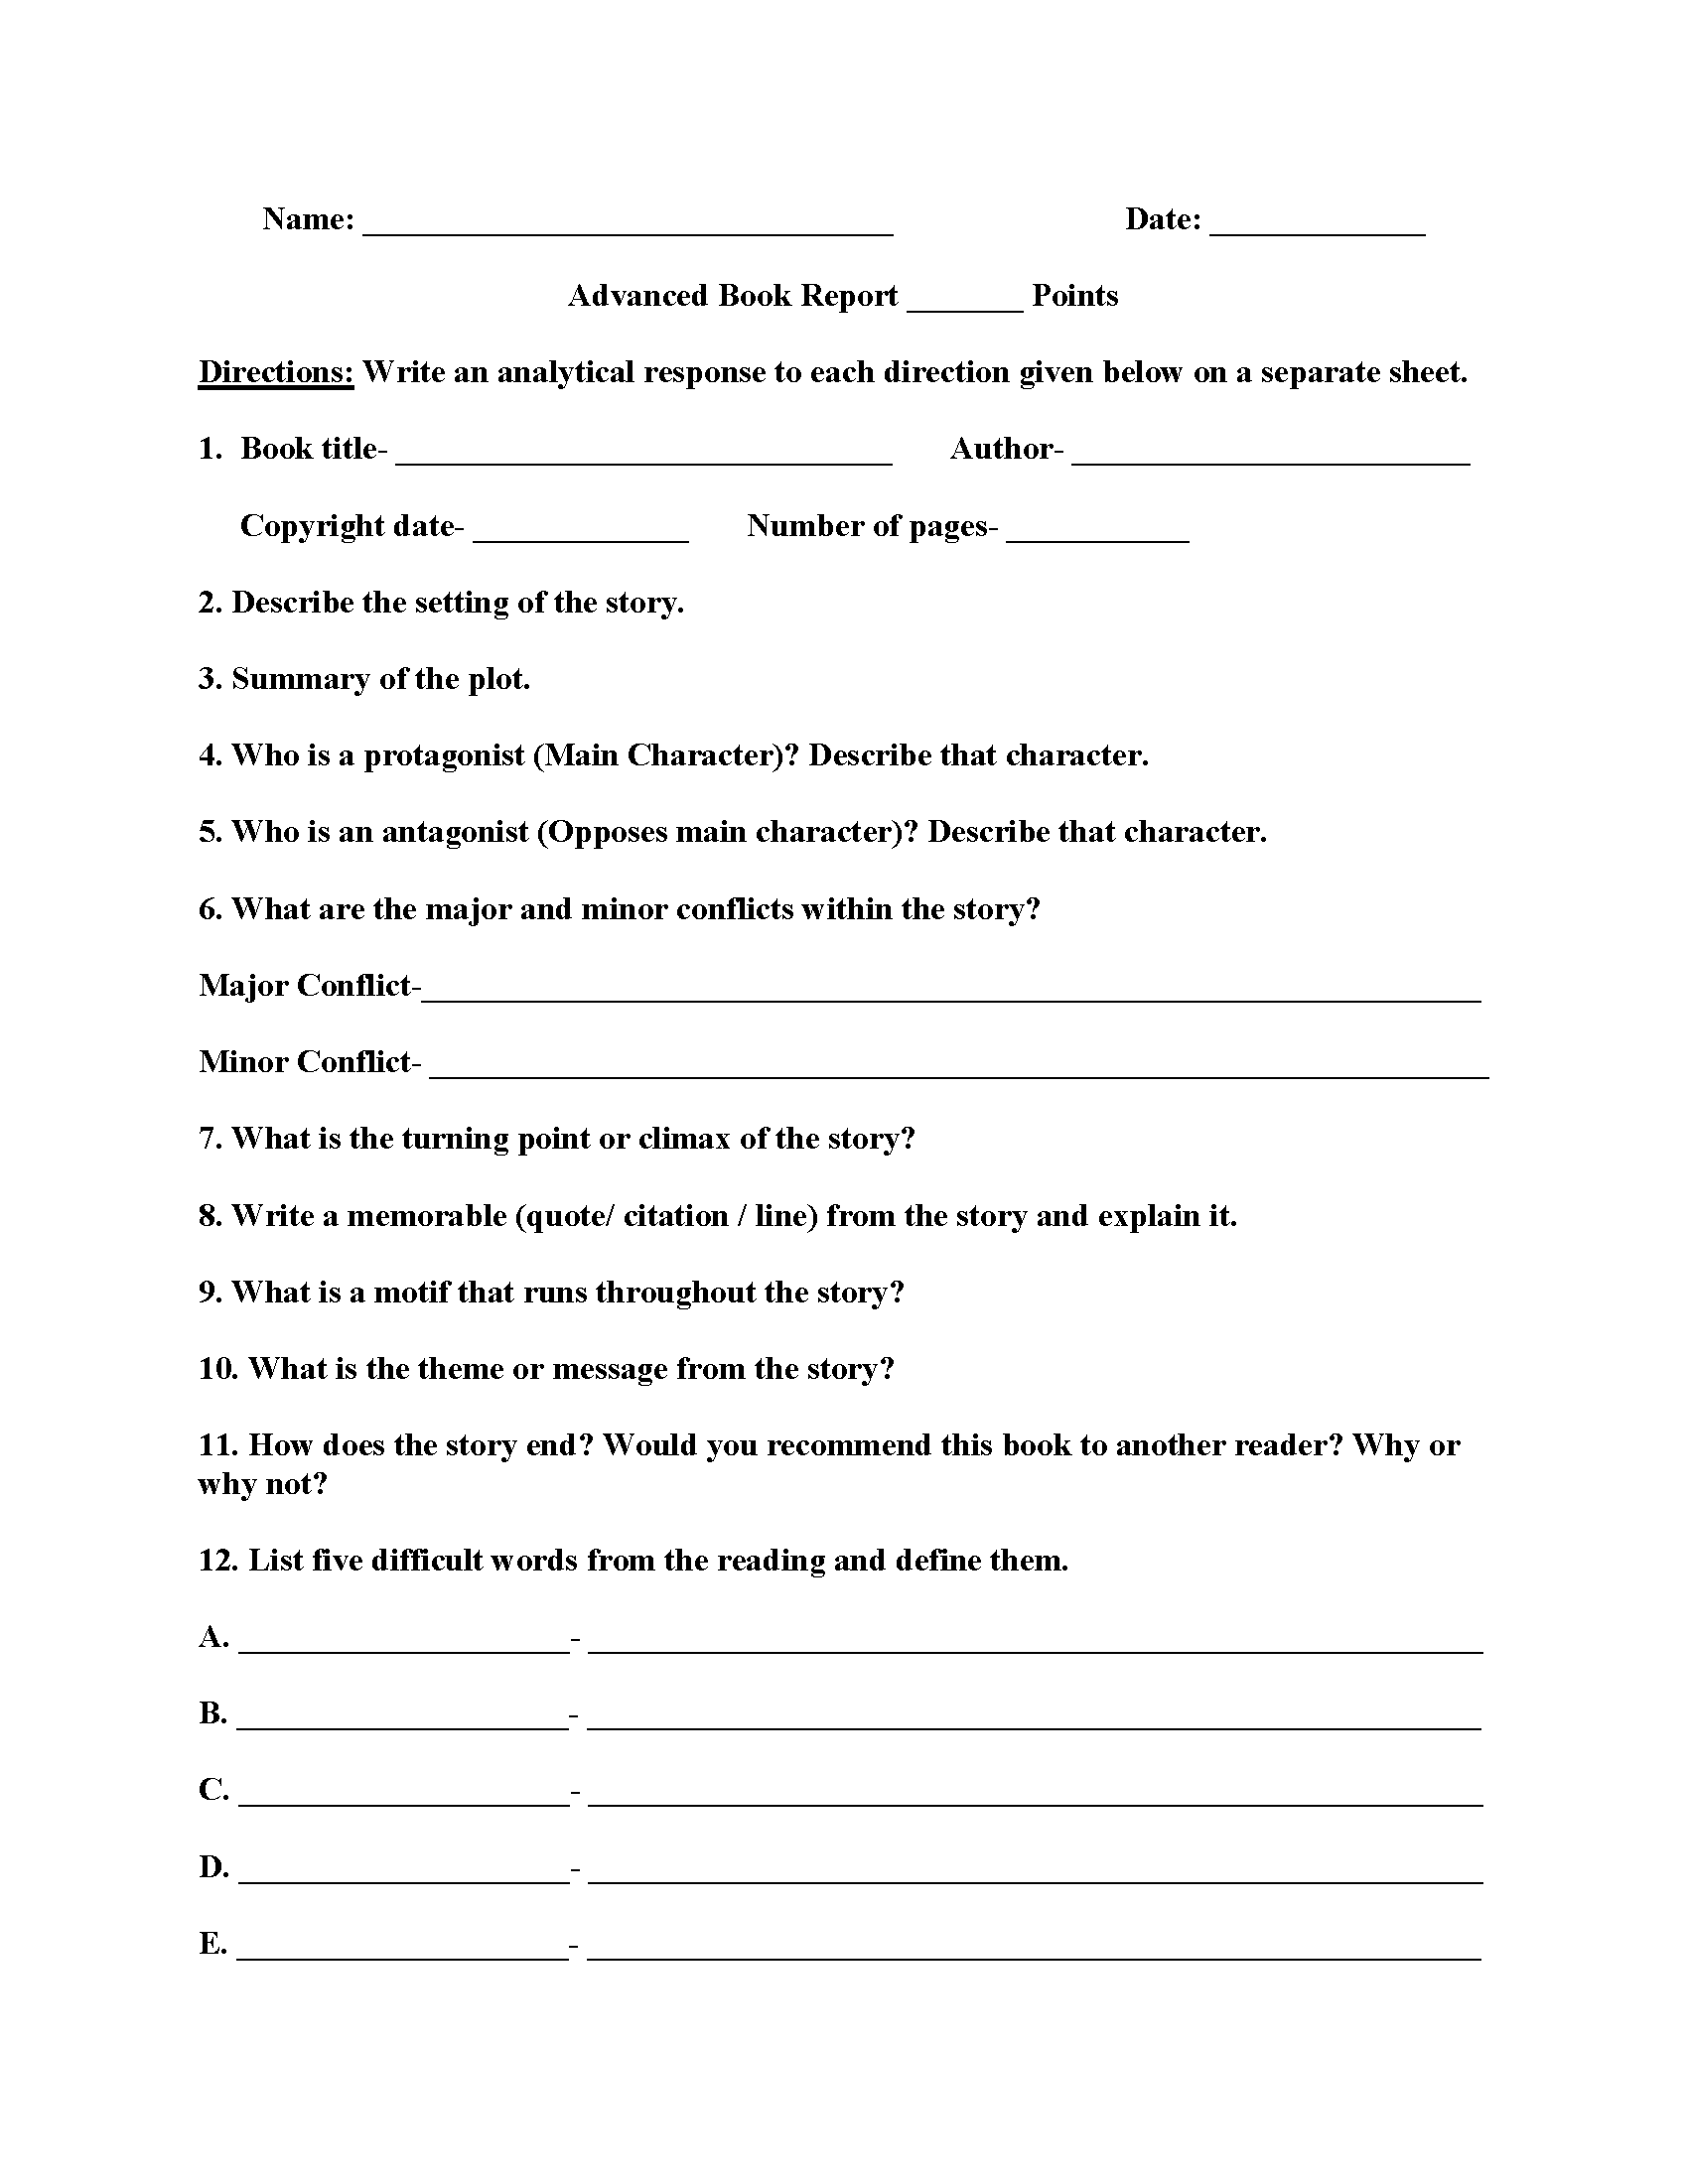 worksheet 8th Grade Writing Worksheets advanced book report worksheets homework pinterest worksheets